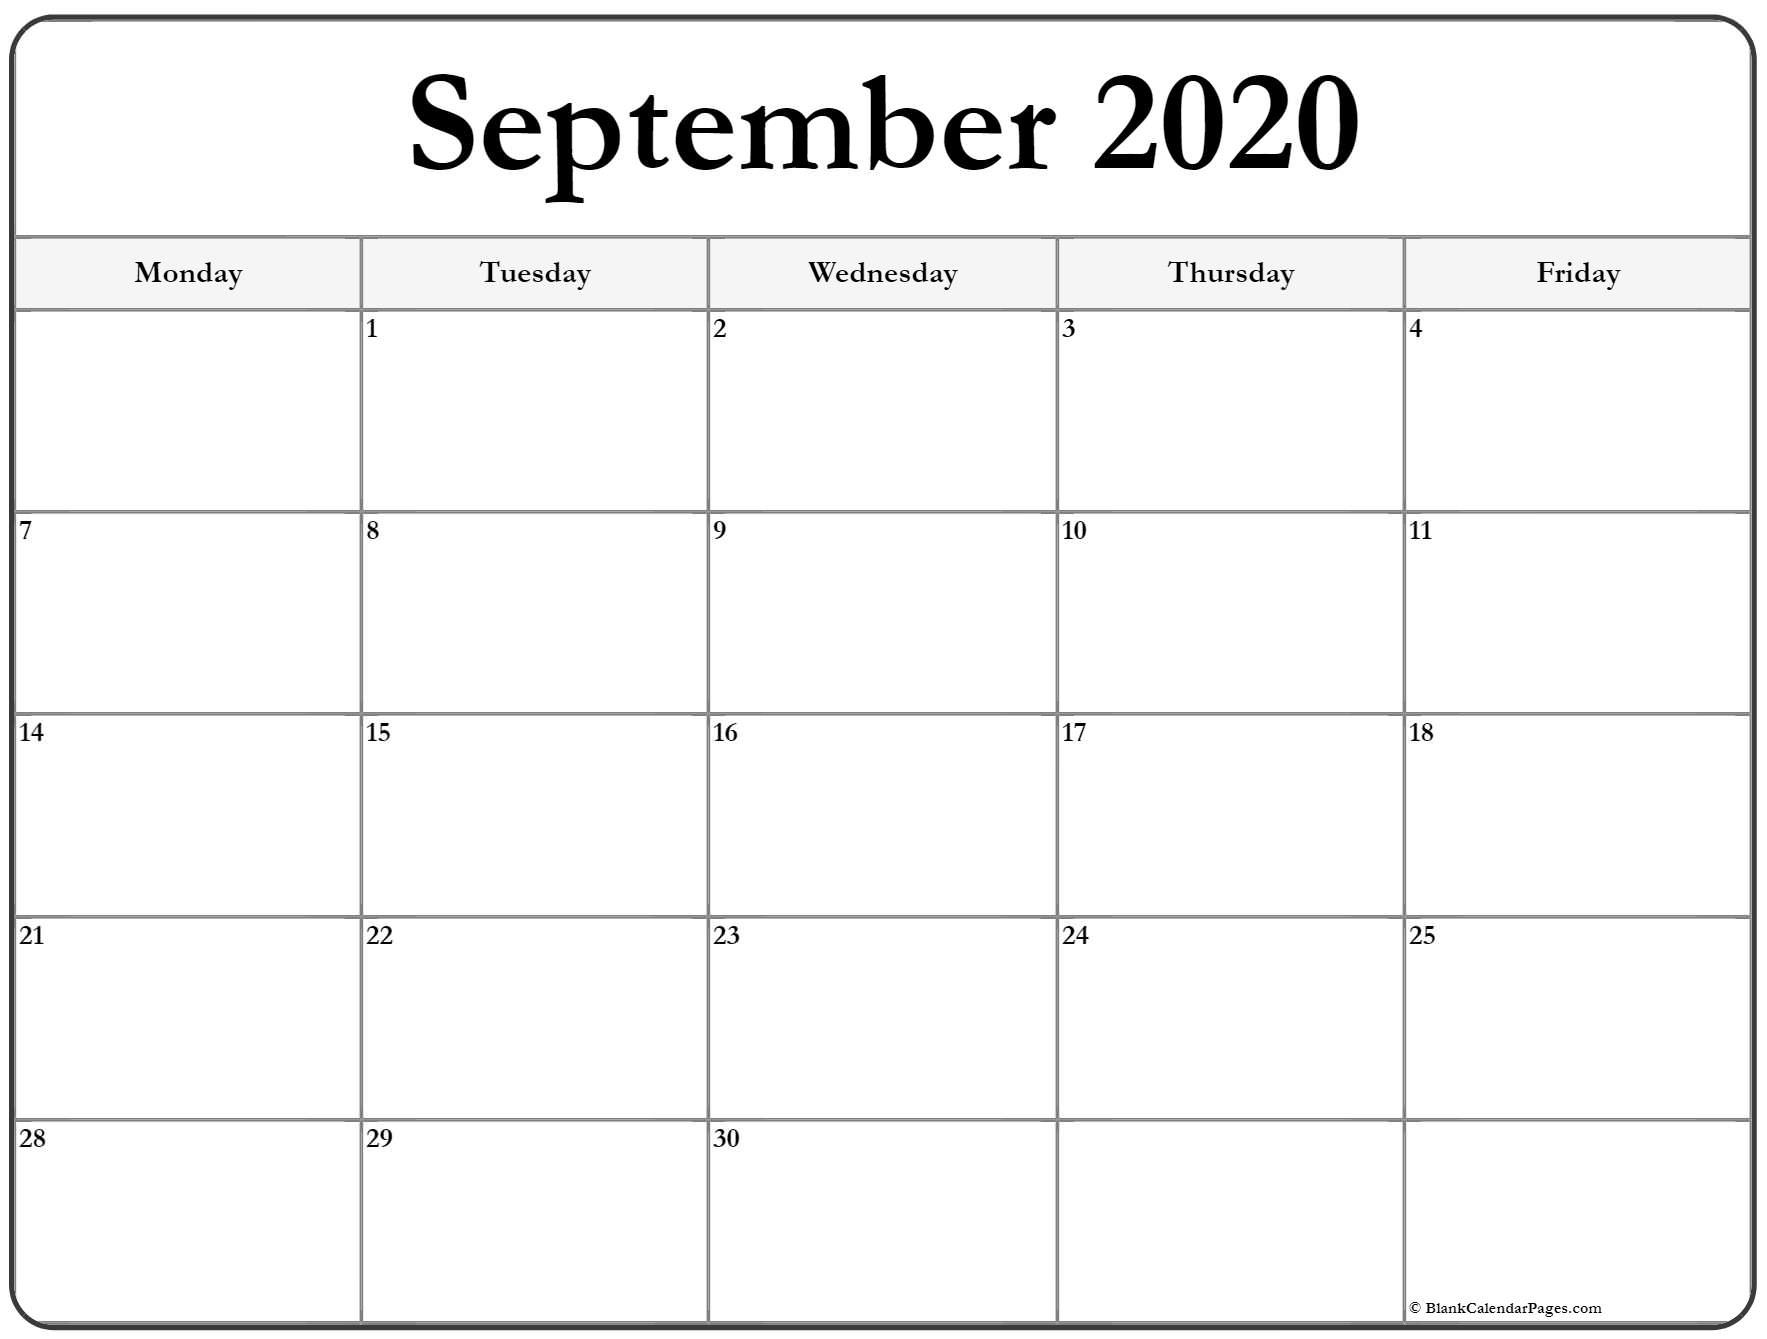 September 2020 Monday Calendar | Monday To Sunday intended for Monday To Friday Calendar